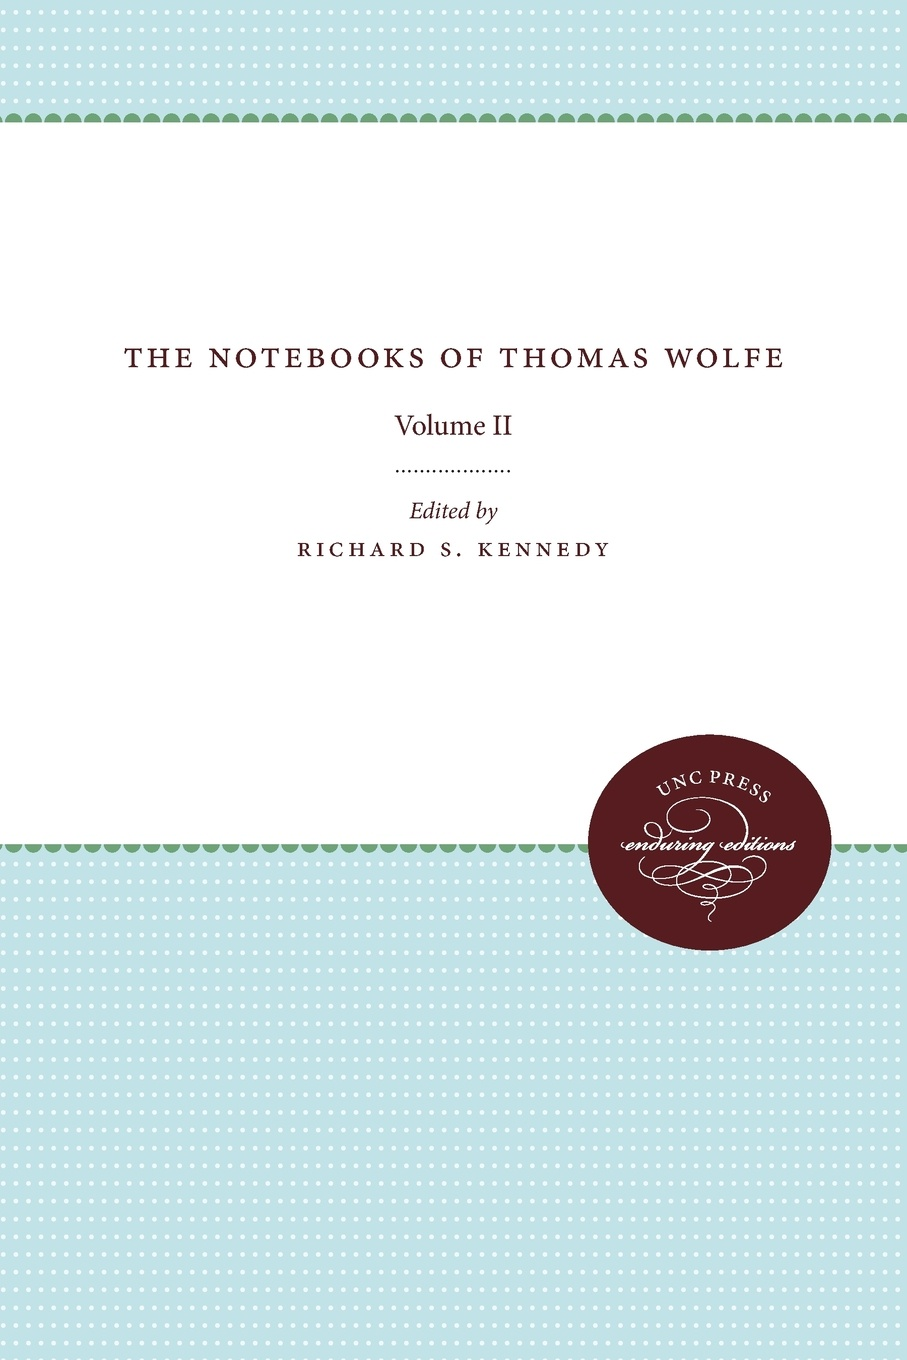 The Notebooks of Thomas Wolfe. Volume II henry aldrich the rudiments of the art of logic literally tr from the text of aldrich with explanatory notes